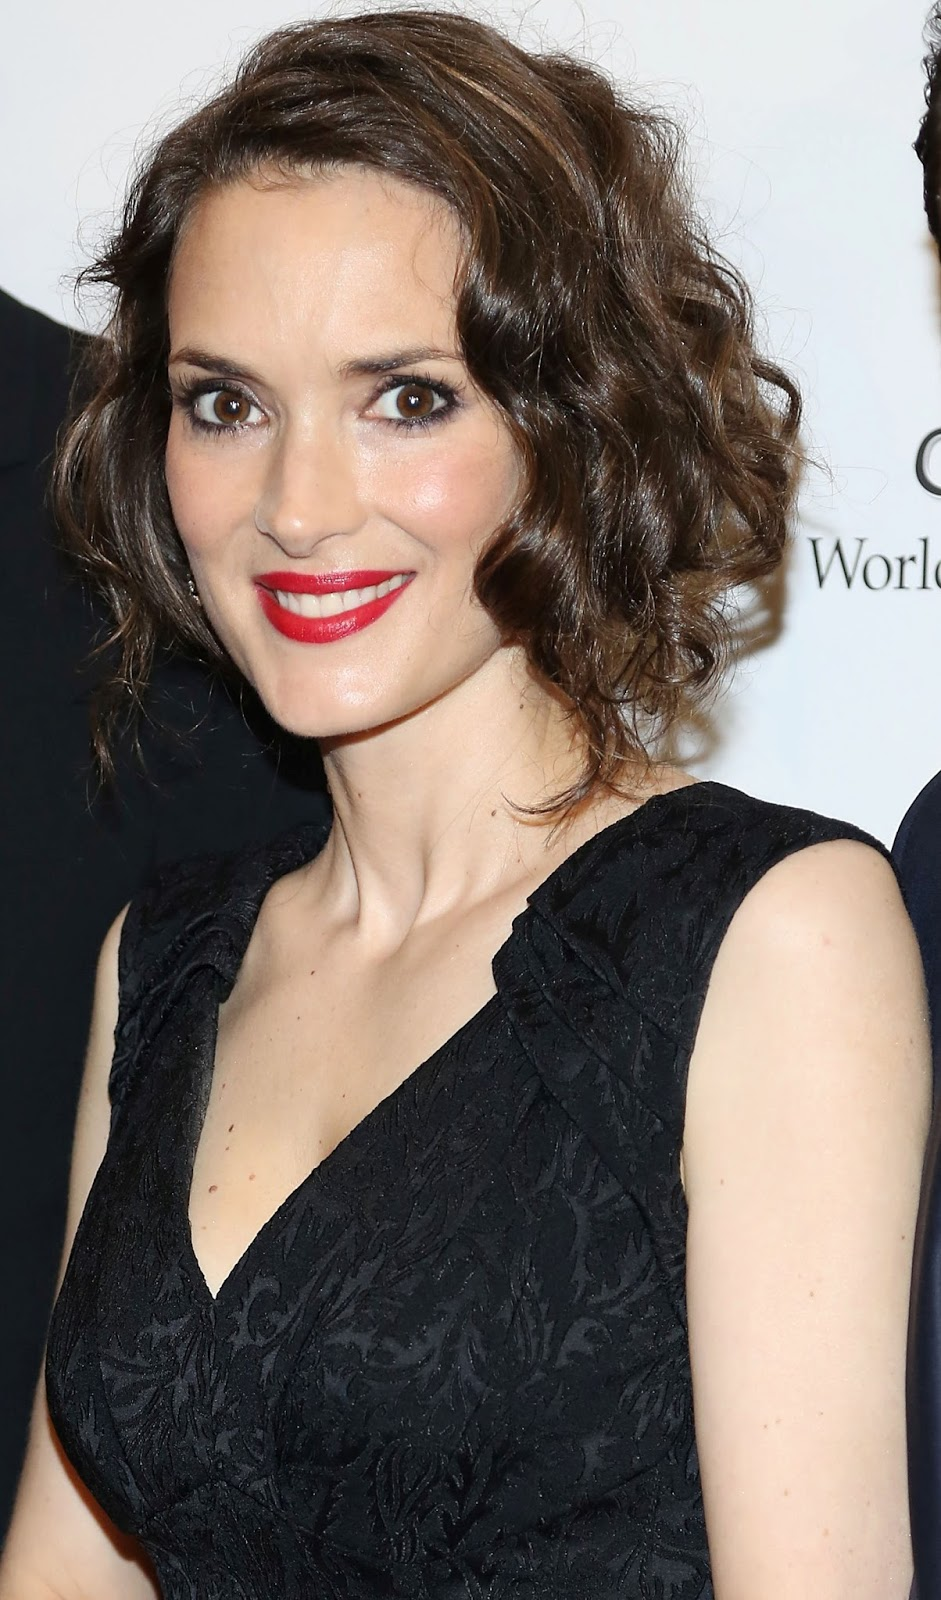 winona ryder - photo #33